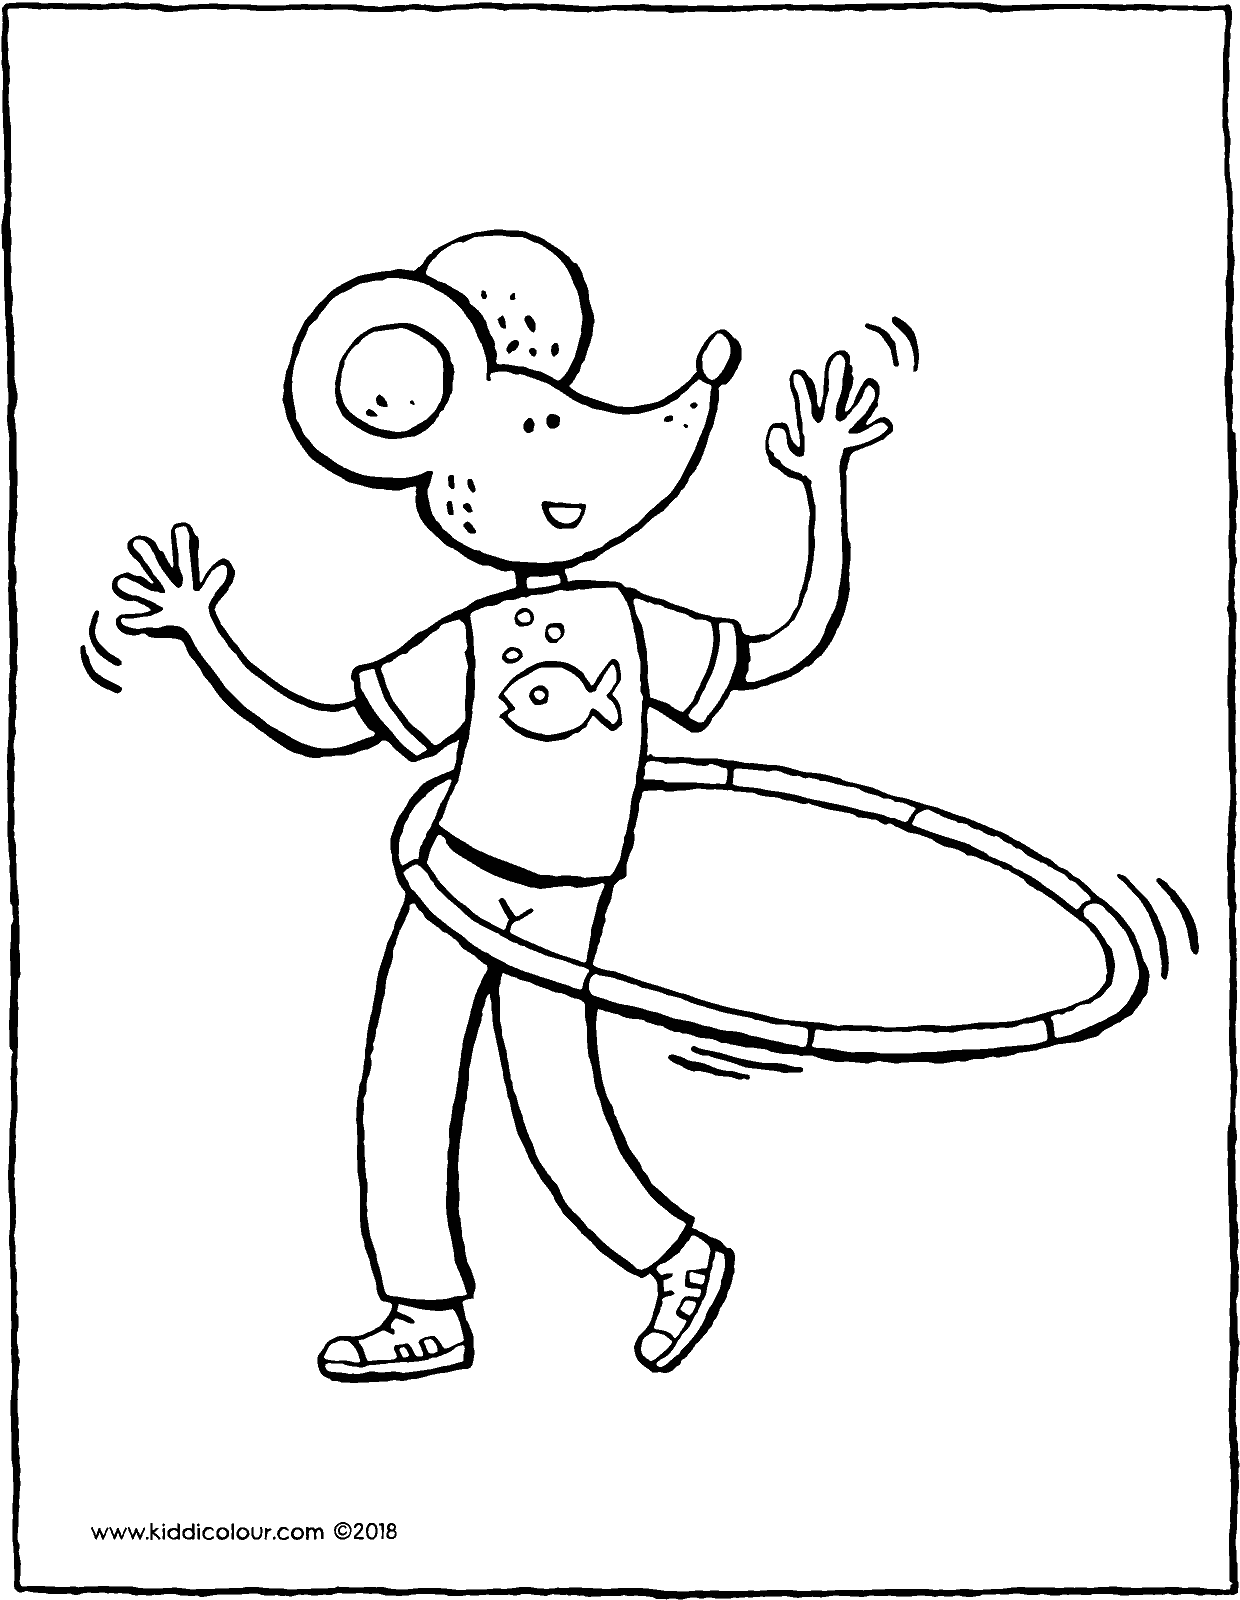 hula-hooping with Thomas colouring page drawing picture 01V